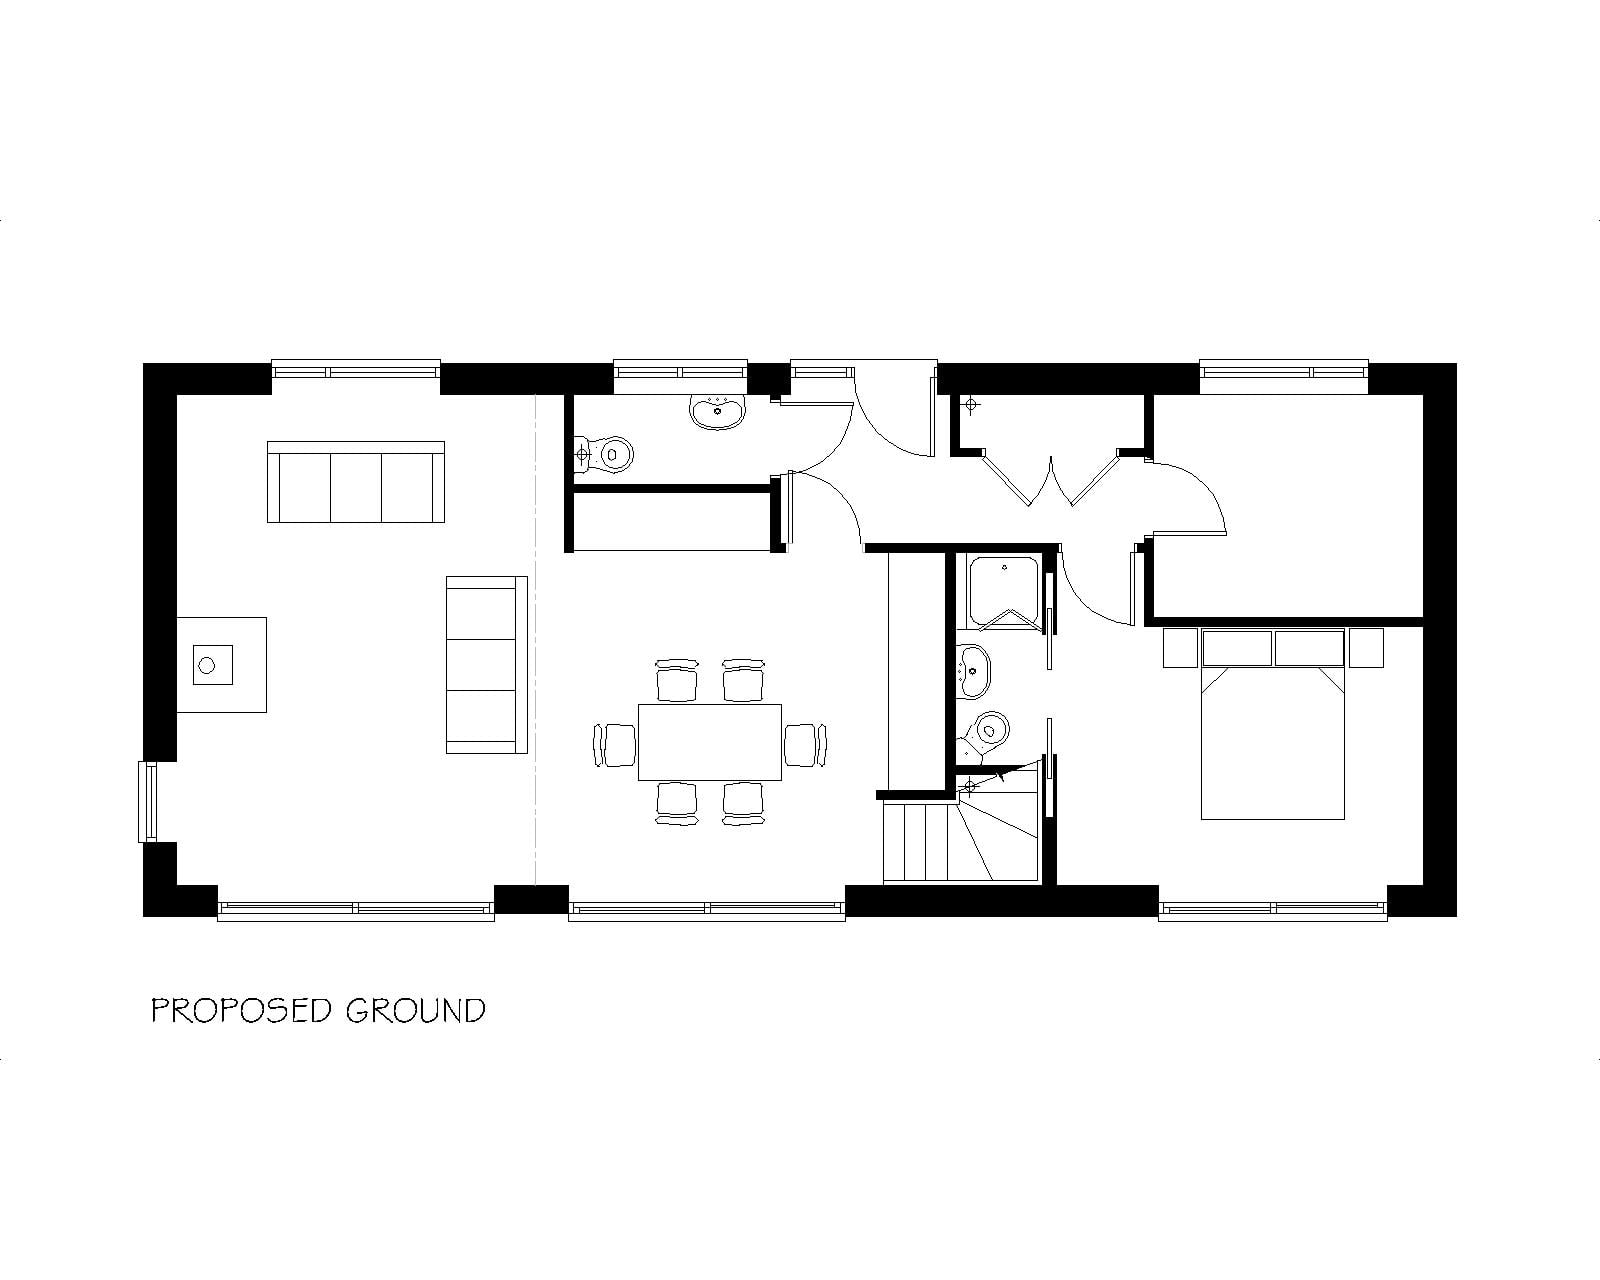 new-build-proposed-ground-floor-plan-harvey-norman-architects-cambridge.jpg